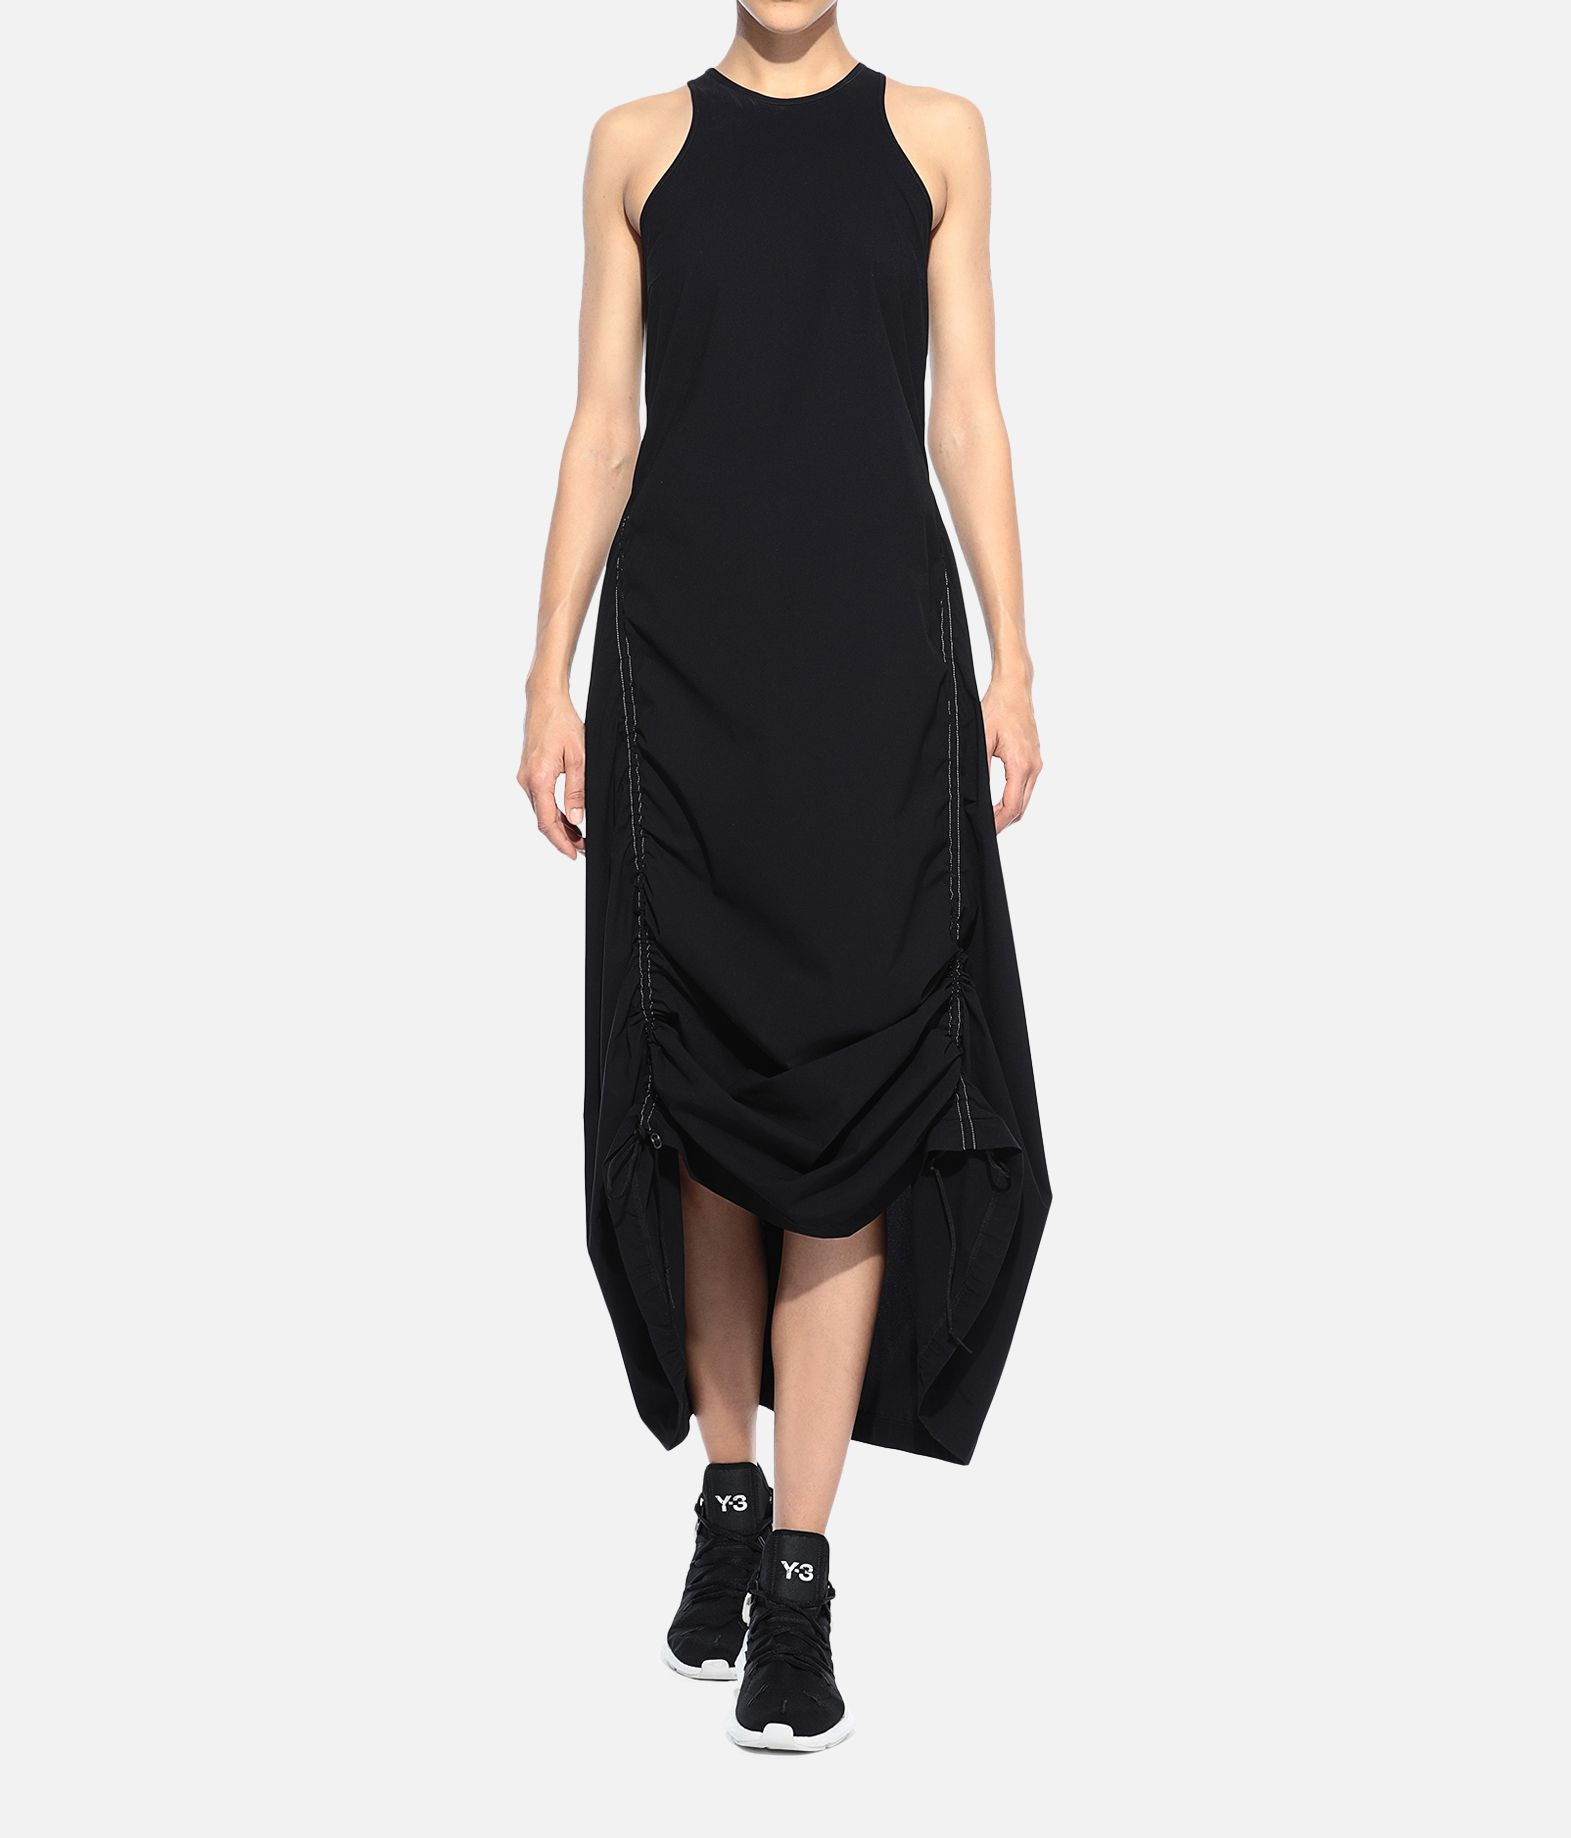 Y-3 Y-3 Light 3-Stripes Dress Dress Woman a